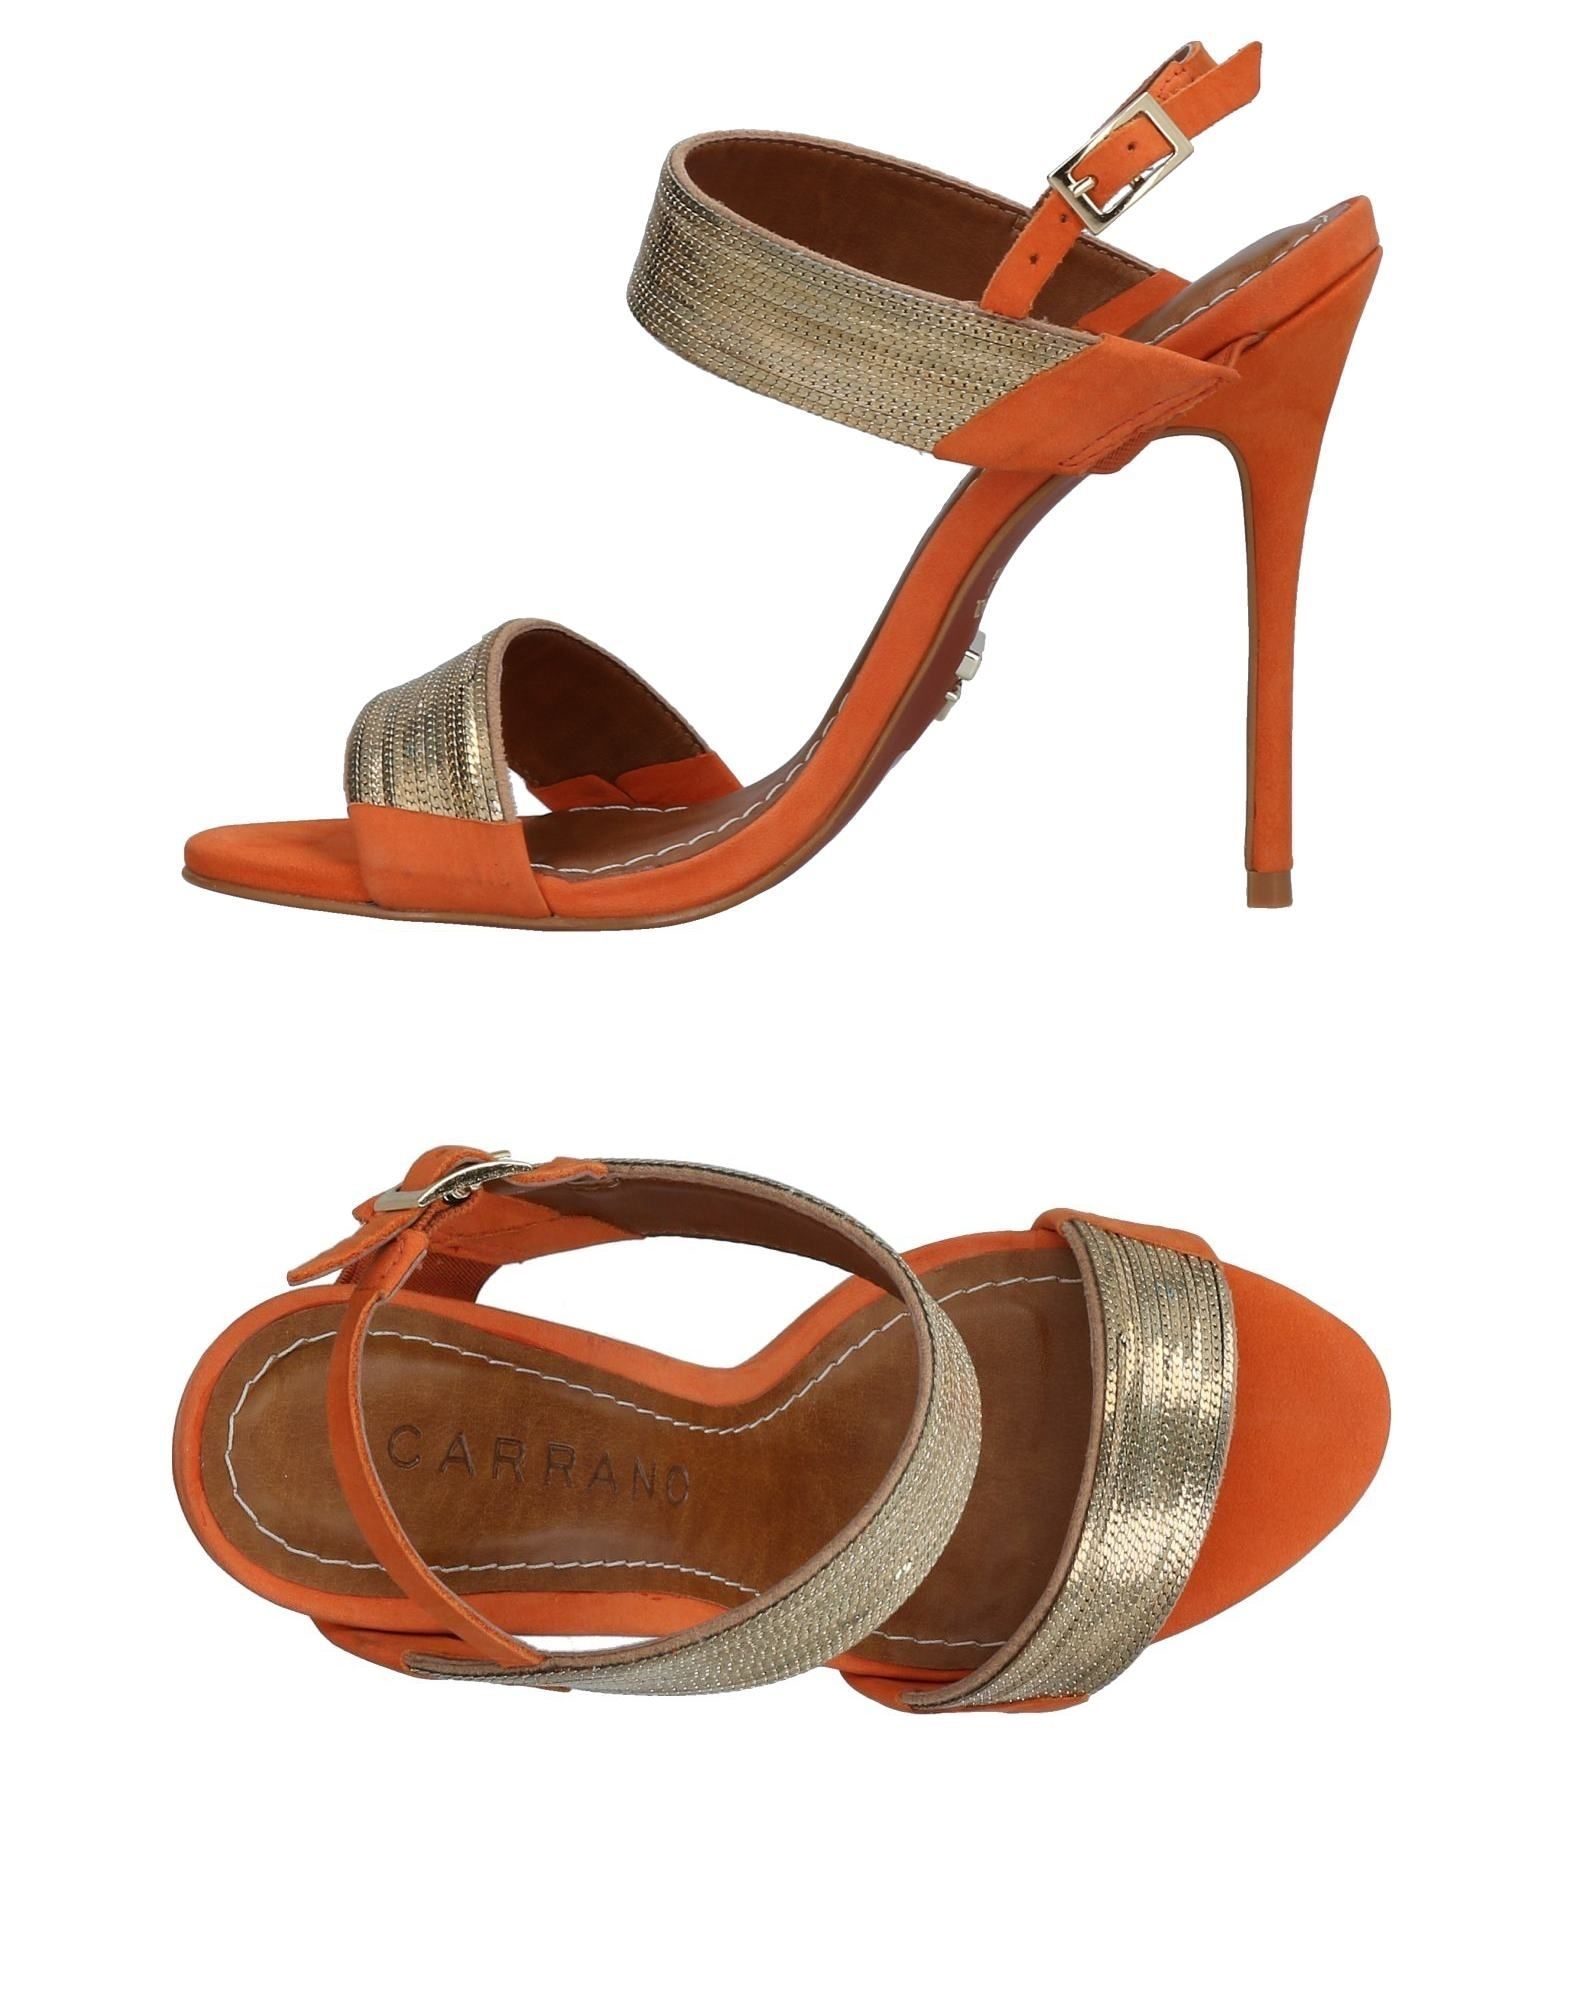 7a44c4d6488dc Carrano Sandals In Gold